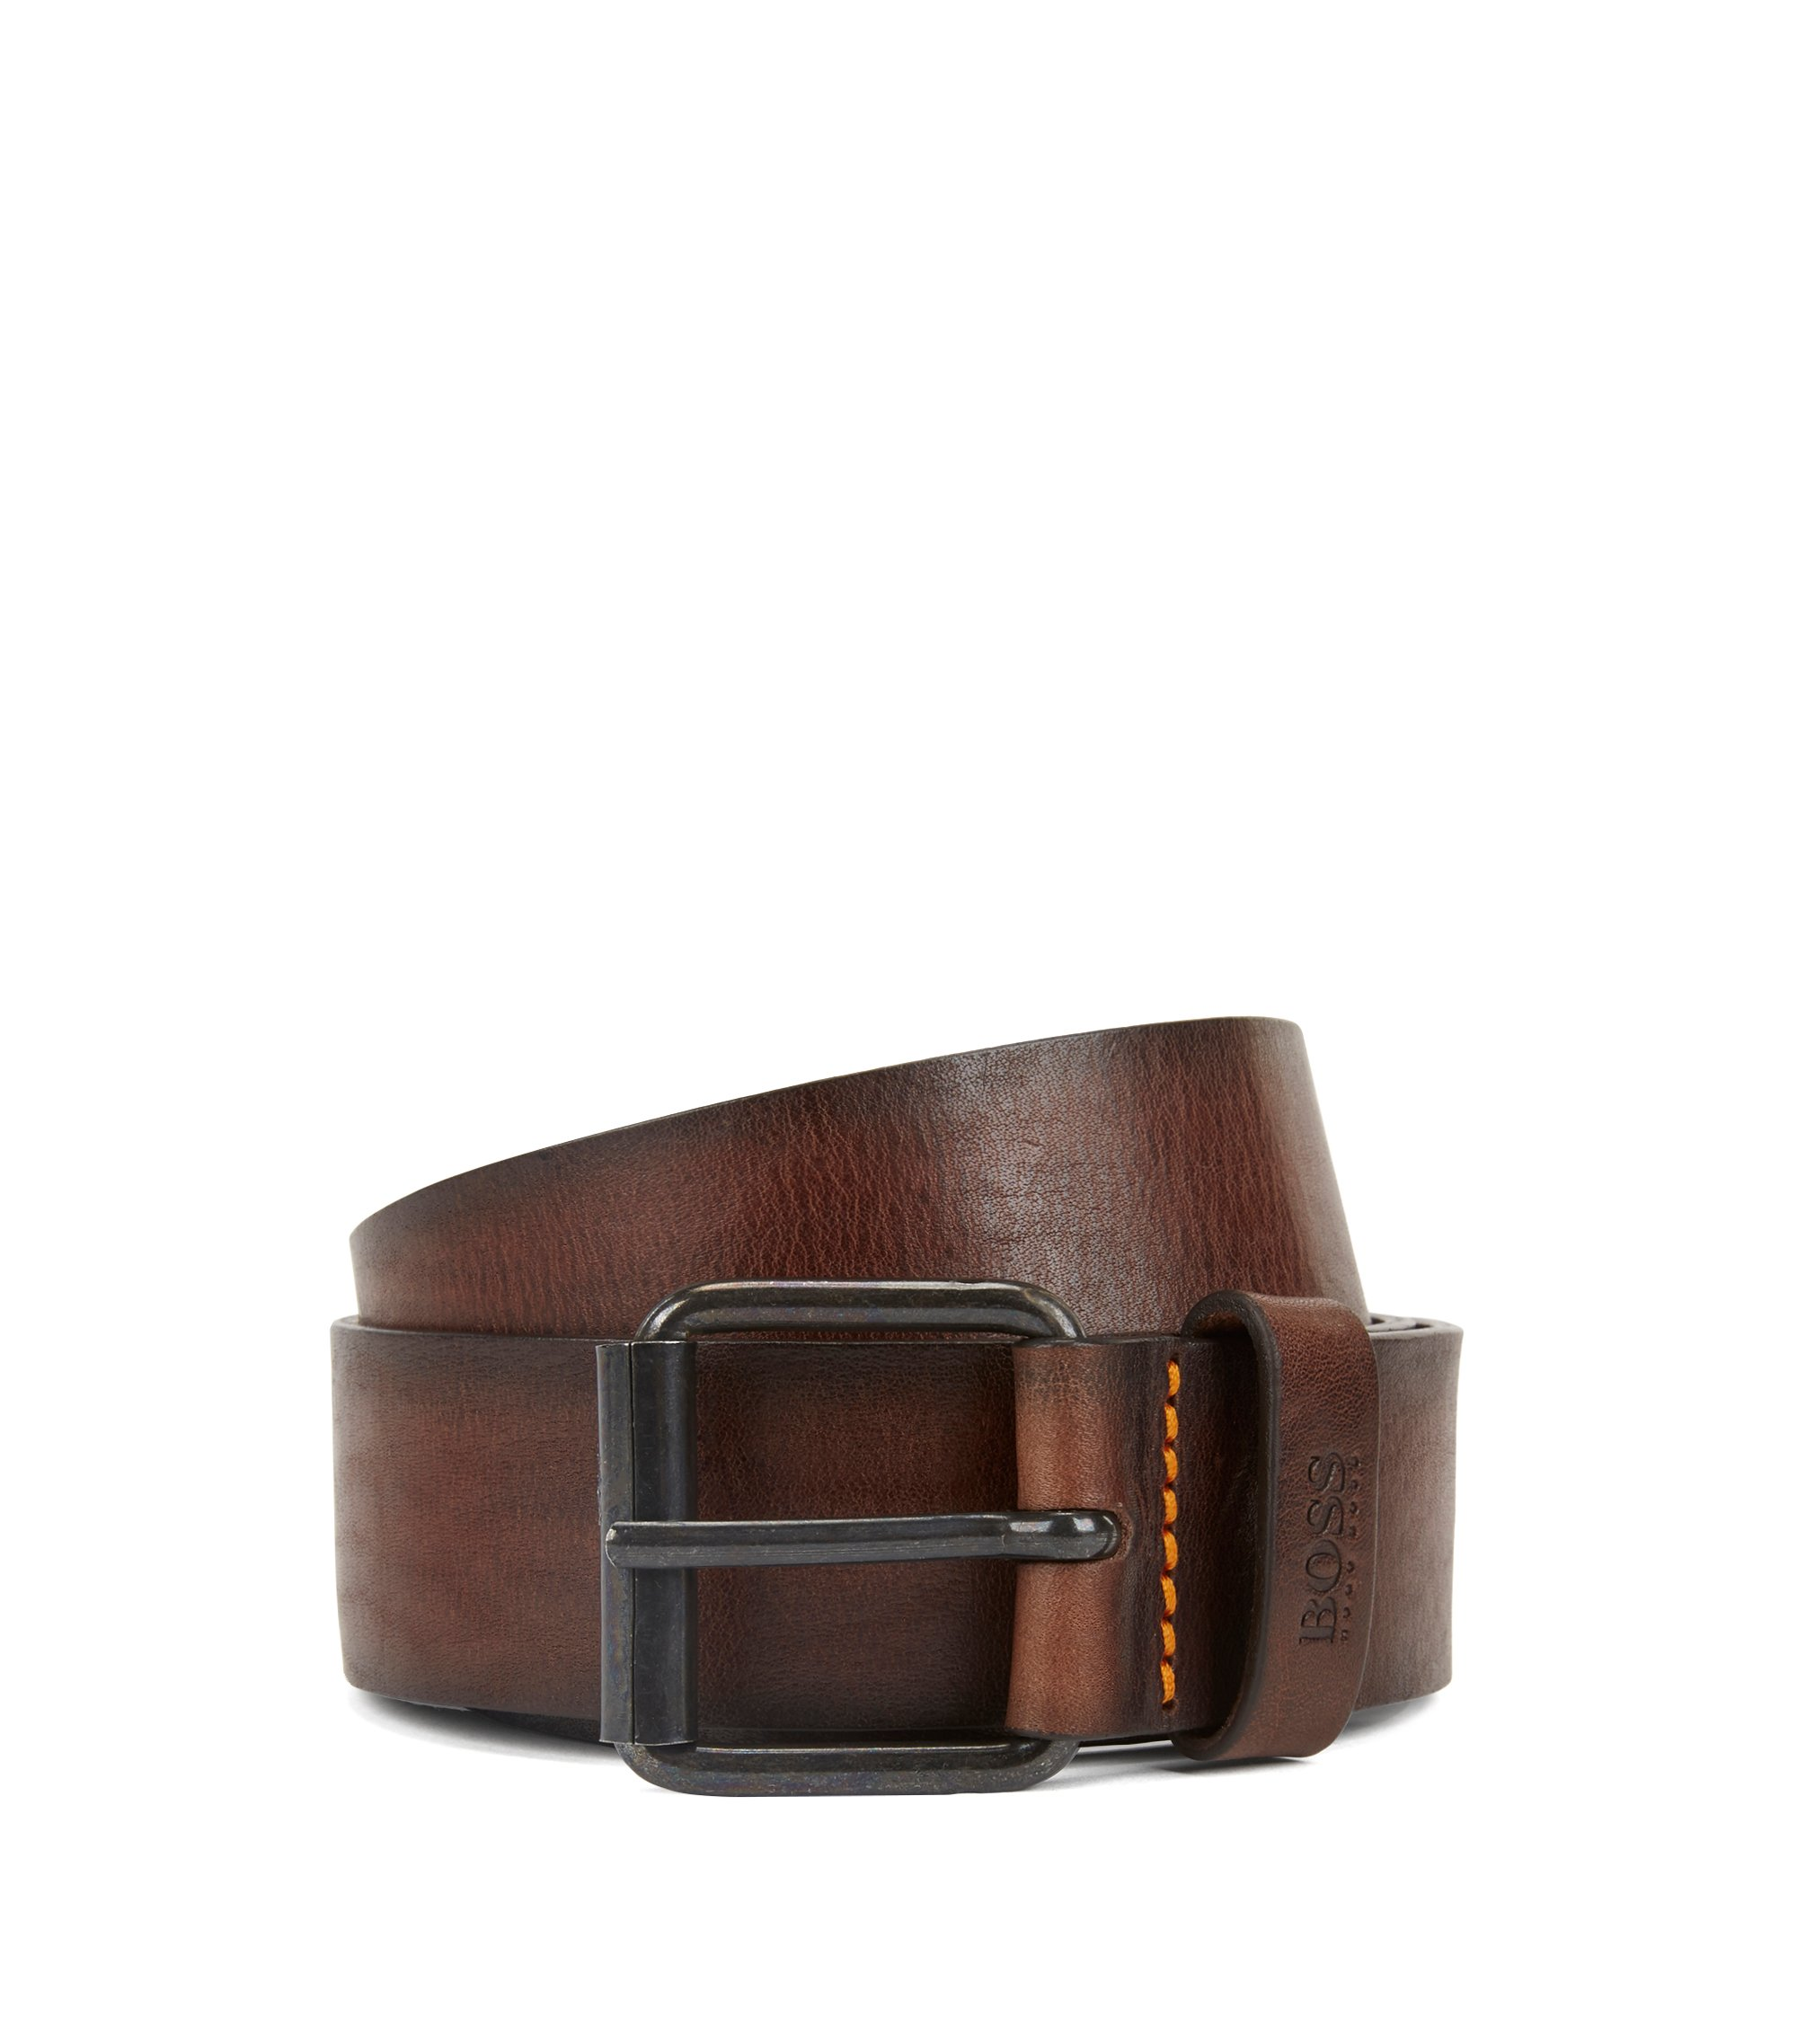 Roller-buckle belt in tumbled leather, Dark Brown